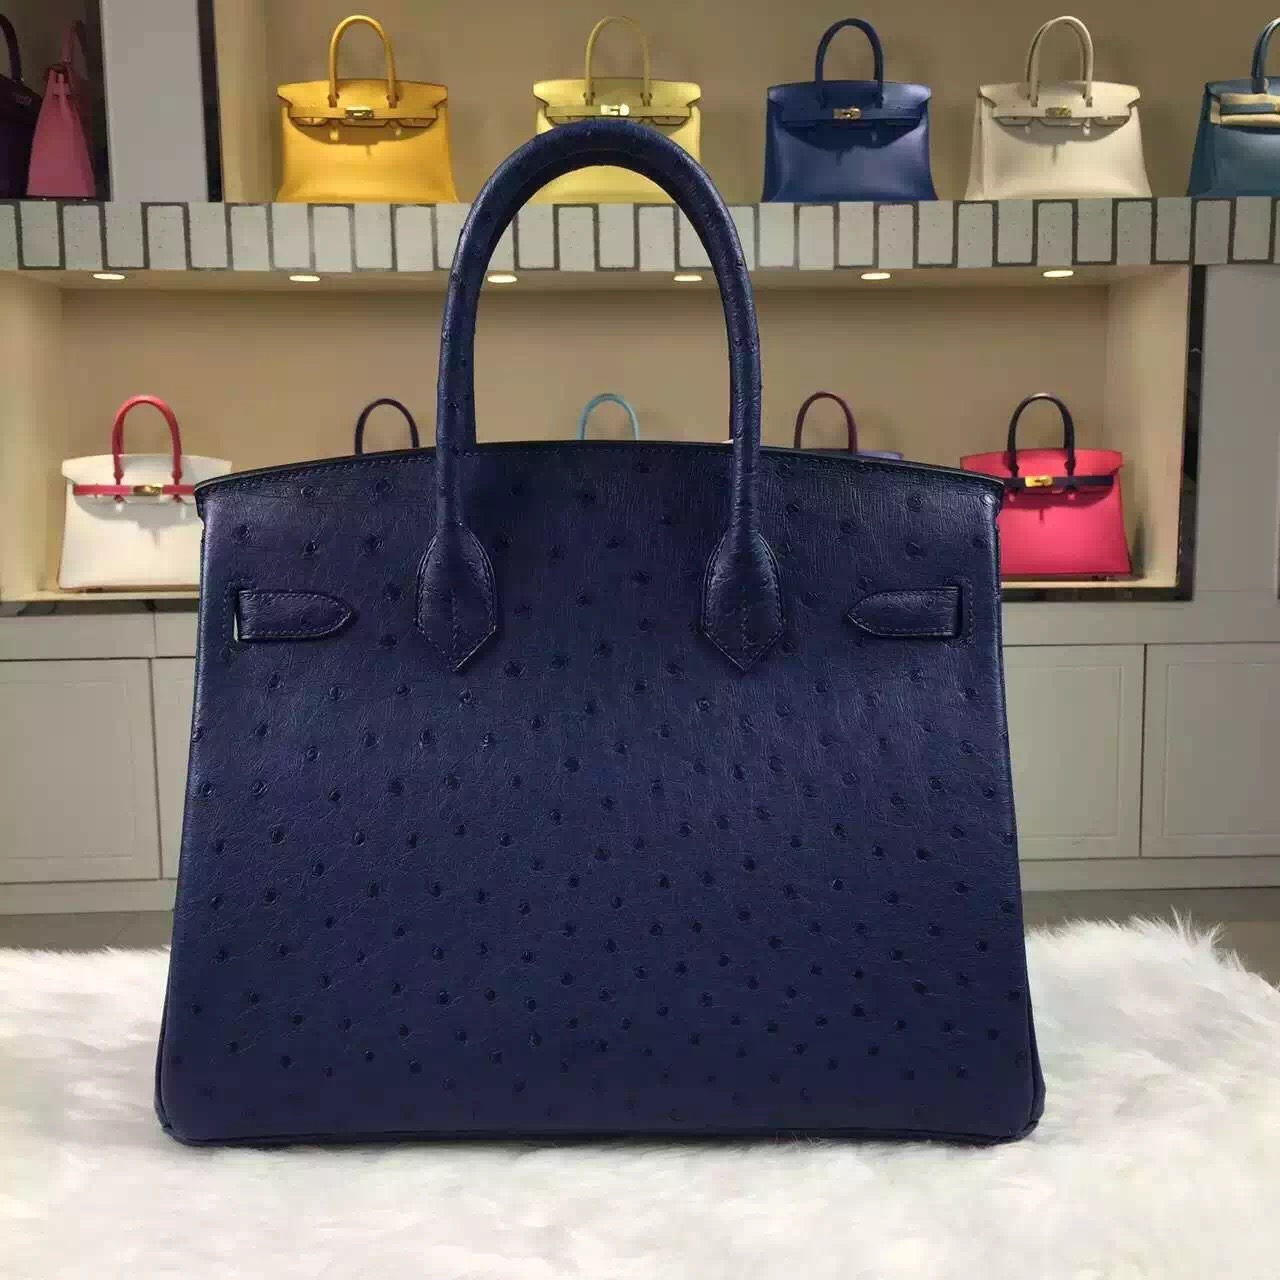 Sale Hermes Birkin Bag30cm Blue Saphir Original Ostrich Leather